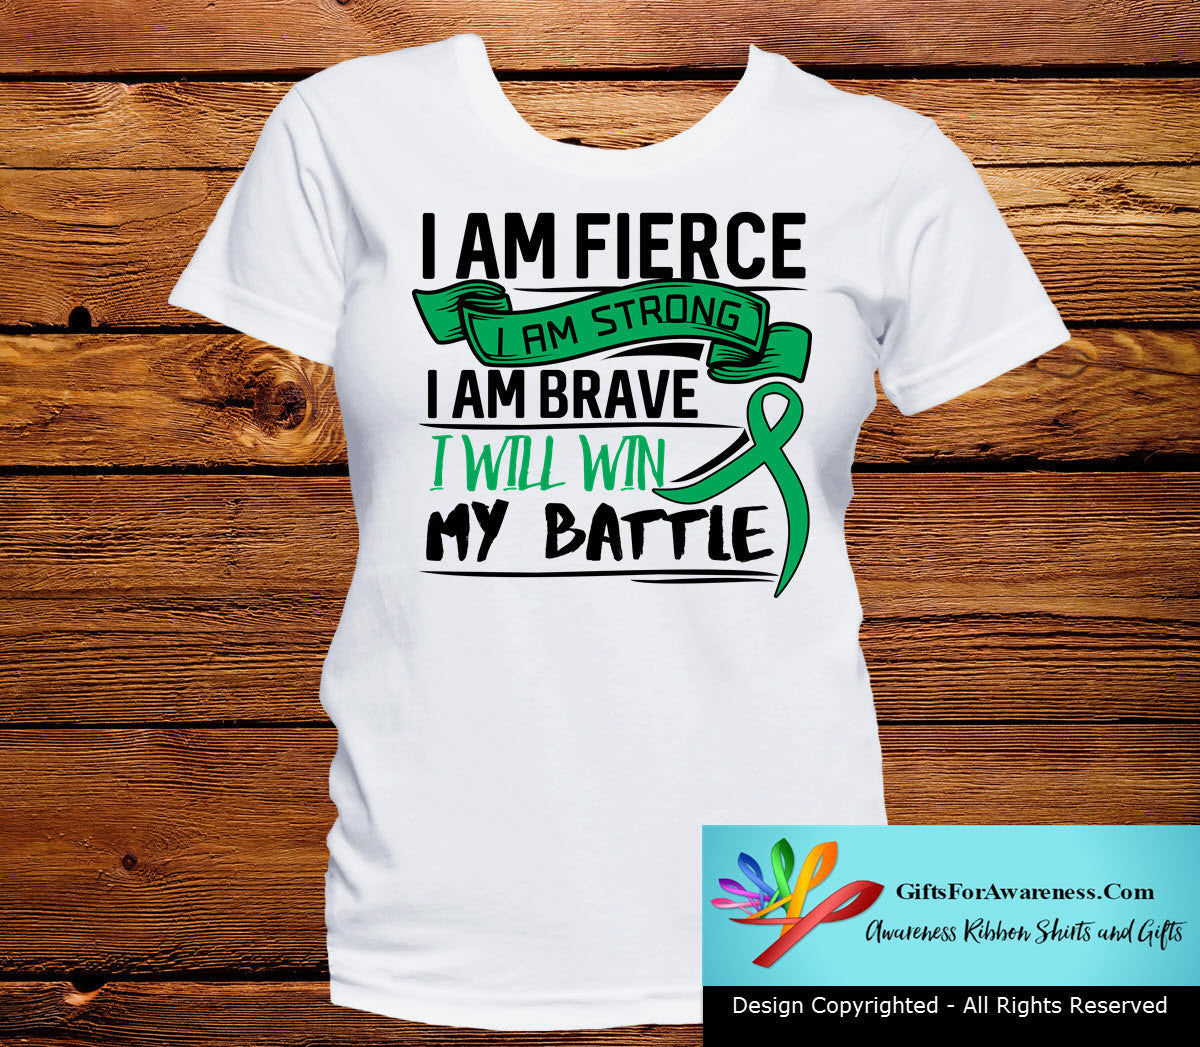 Liver Disease I Am Fierce Strong and Brave Shirts - GiftsForAwareness